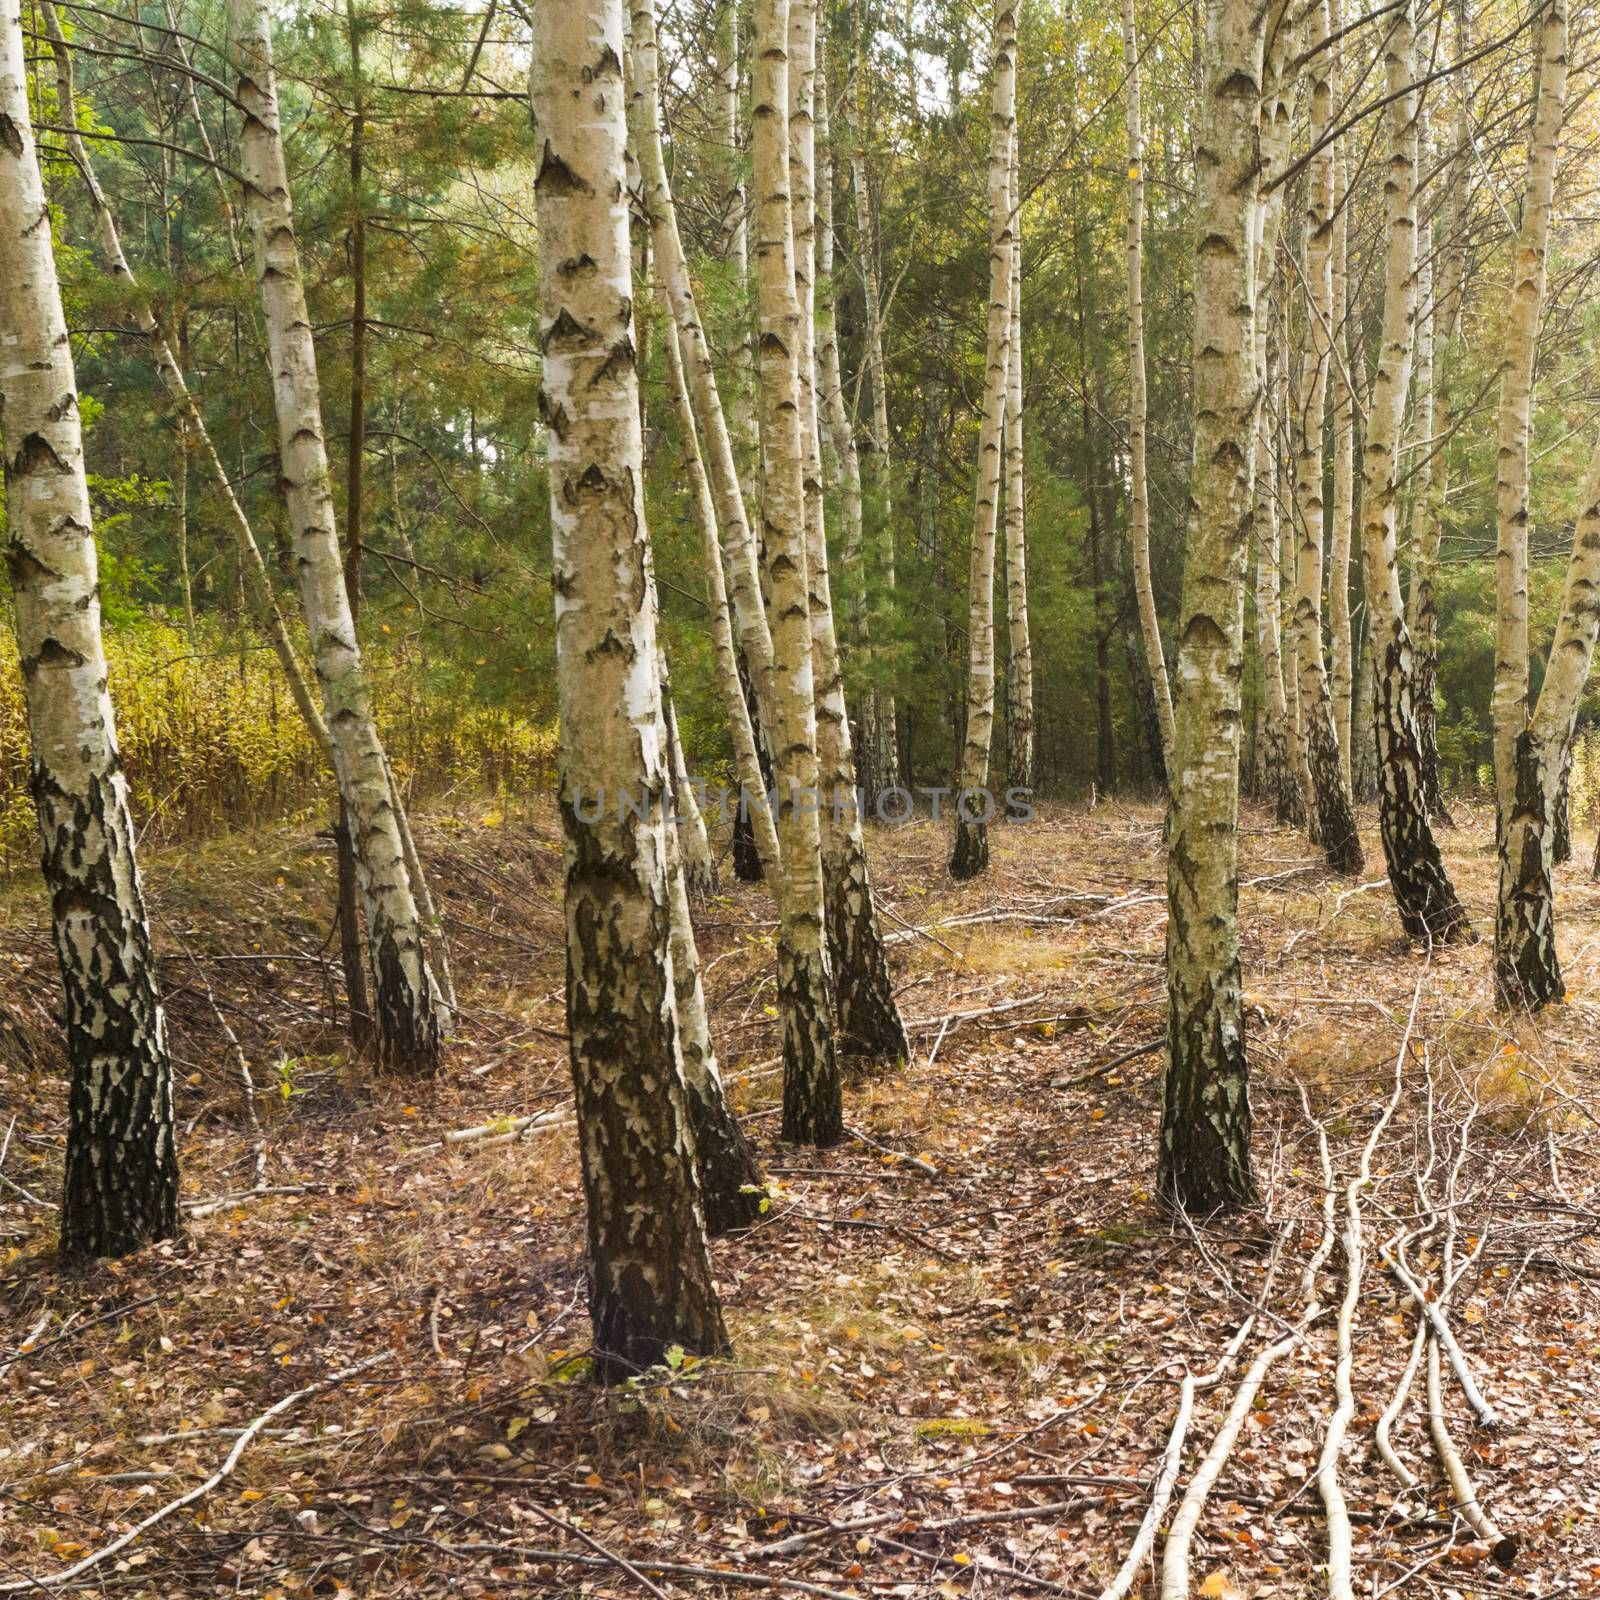 Grove of birch trees in fall color